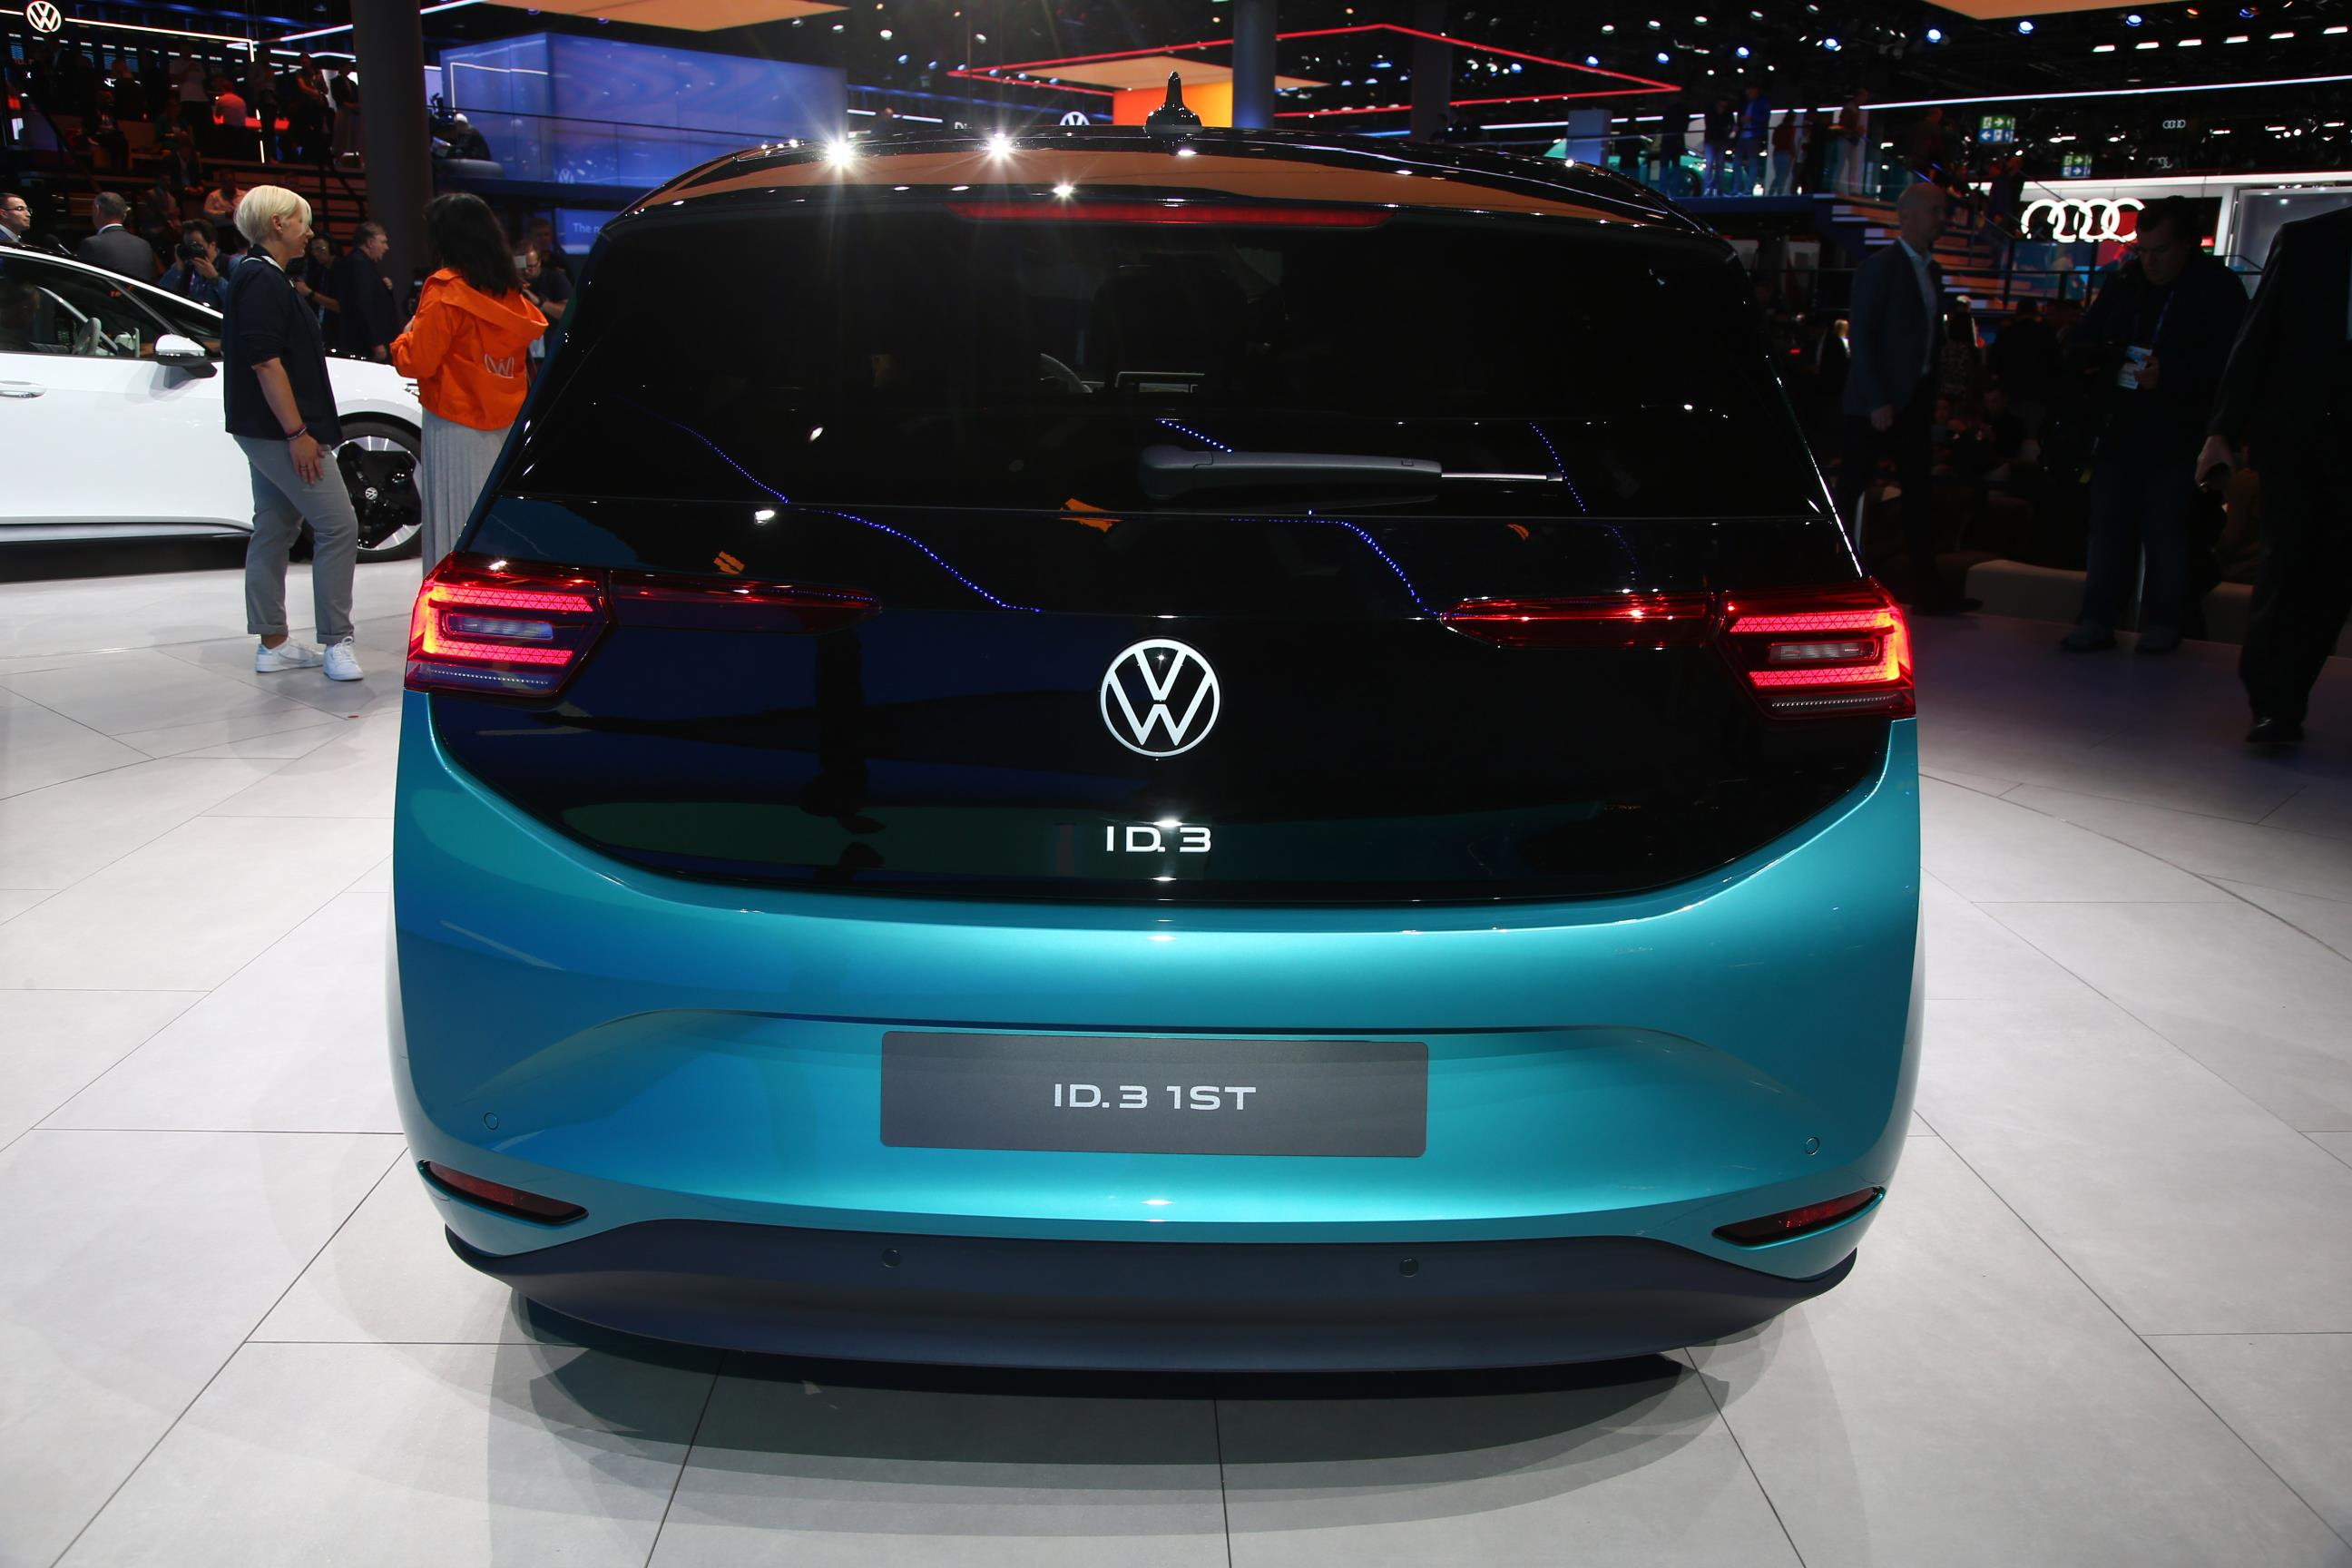 VW ID.3 Rear